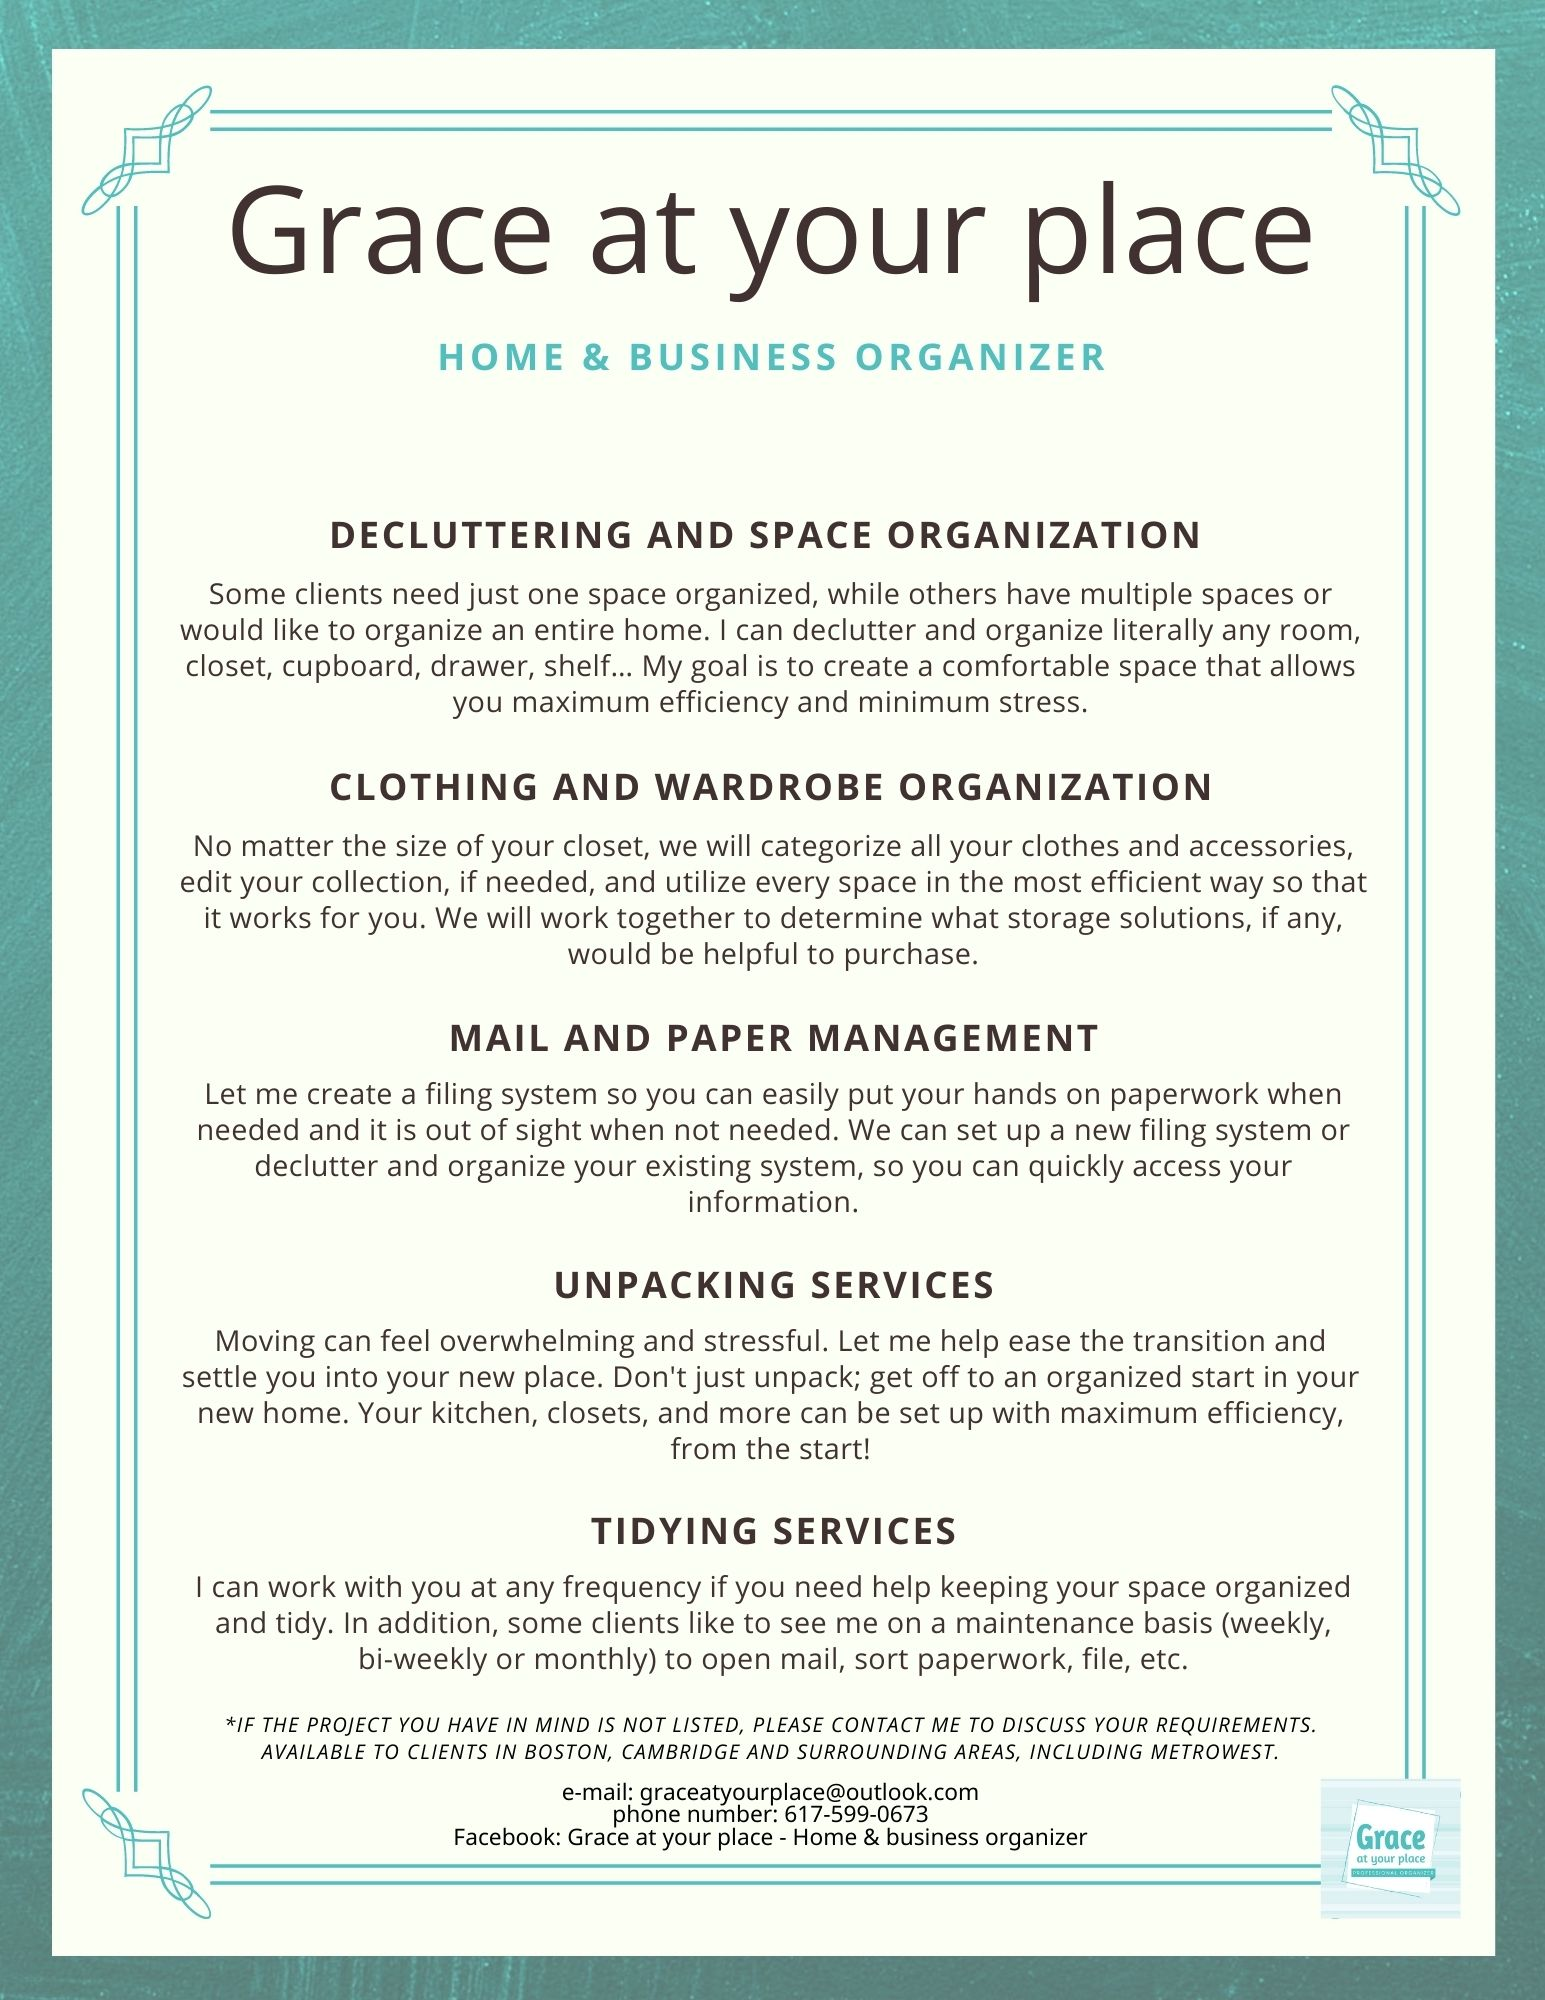 Grace at your place-Home organizer-Boston-Cambridge-Menu of services